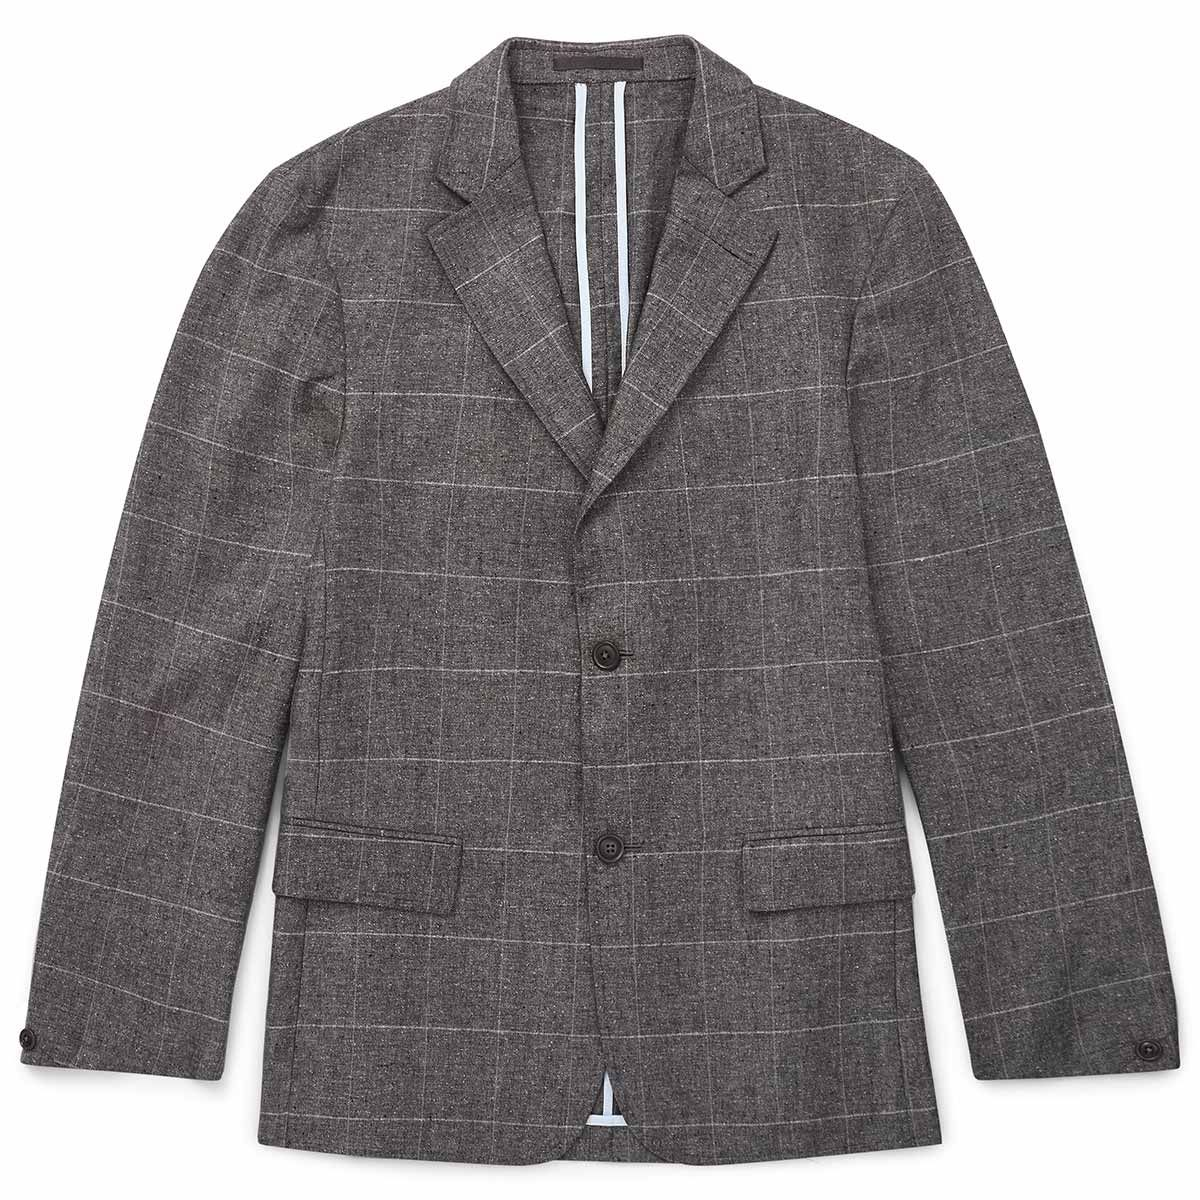 Oliver Sweeney Simpson Pale Grey - Lightweigt Silk/Linen Blazer